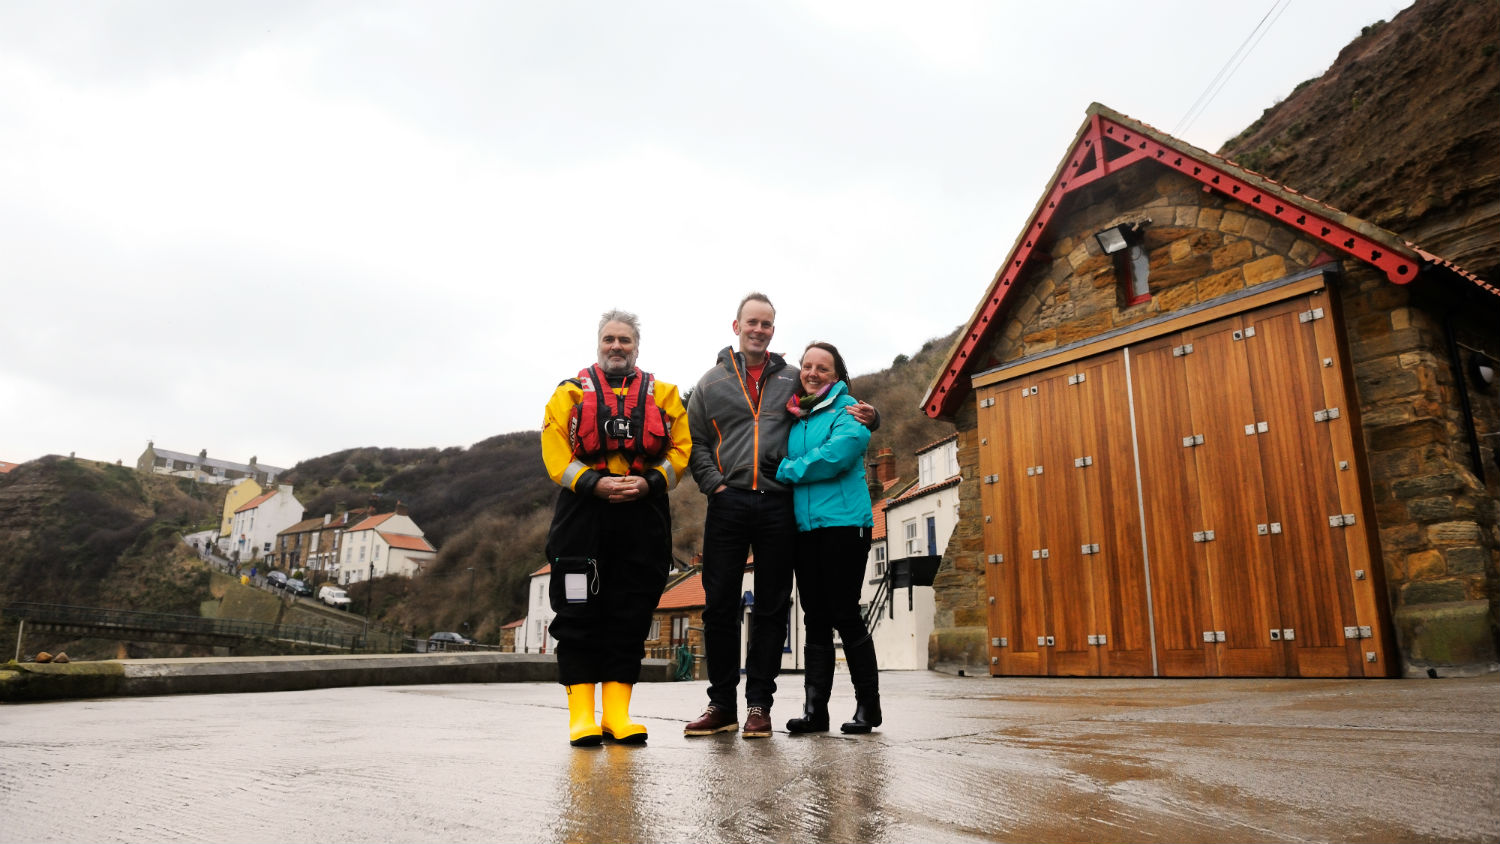 Louisa Barrow and Peter Severs with one of their rescuers, Sean Baxter, at Staithes and Runswick Lifeboat Station